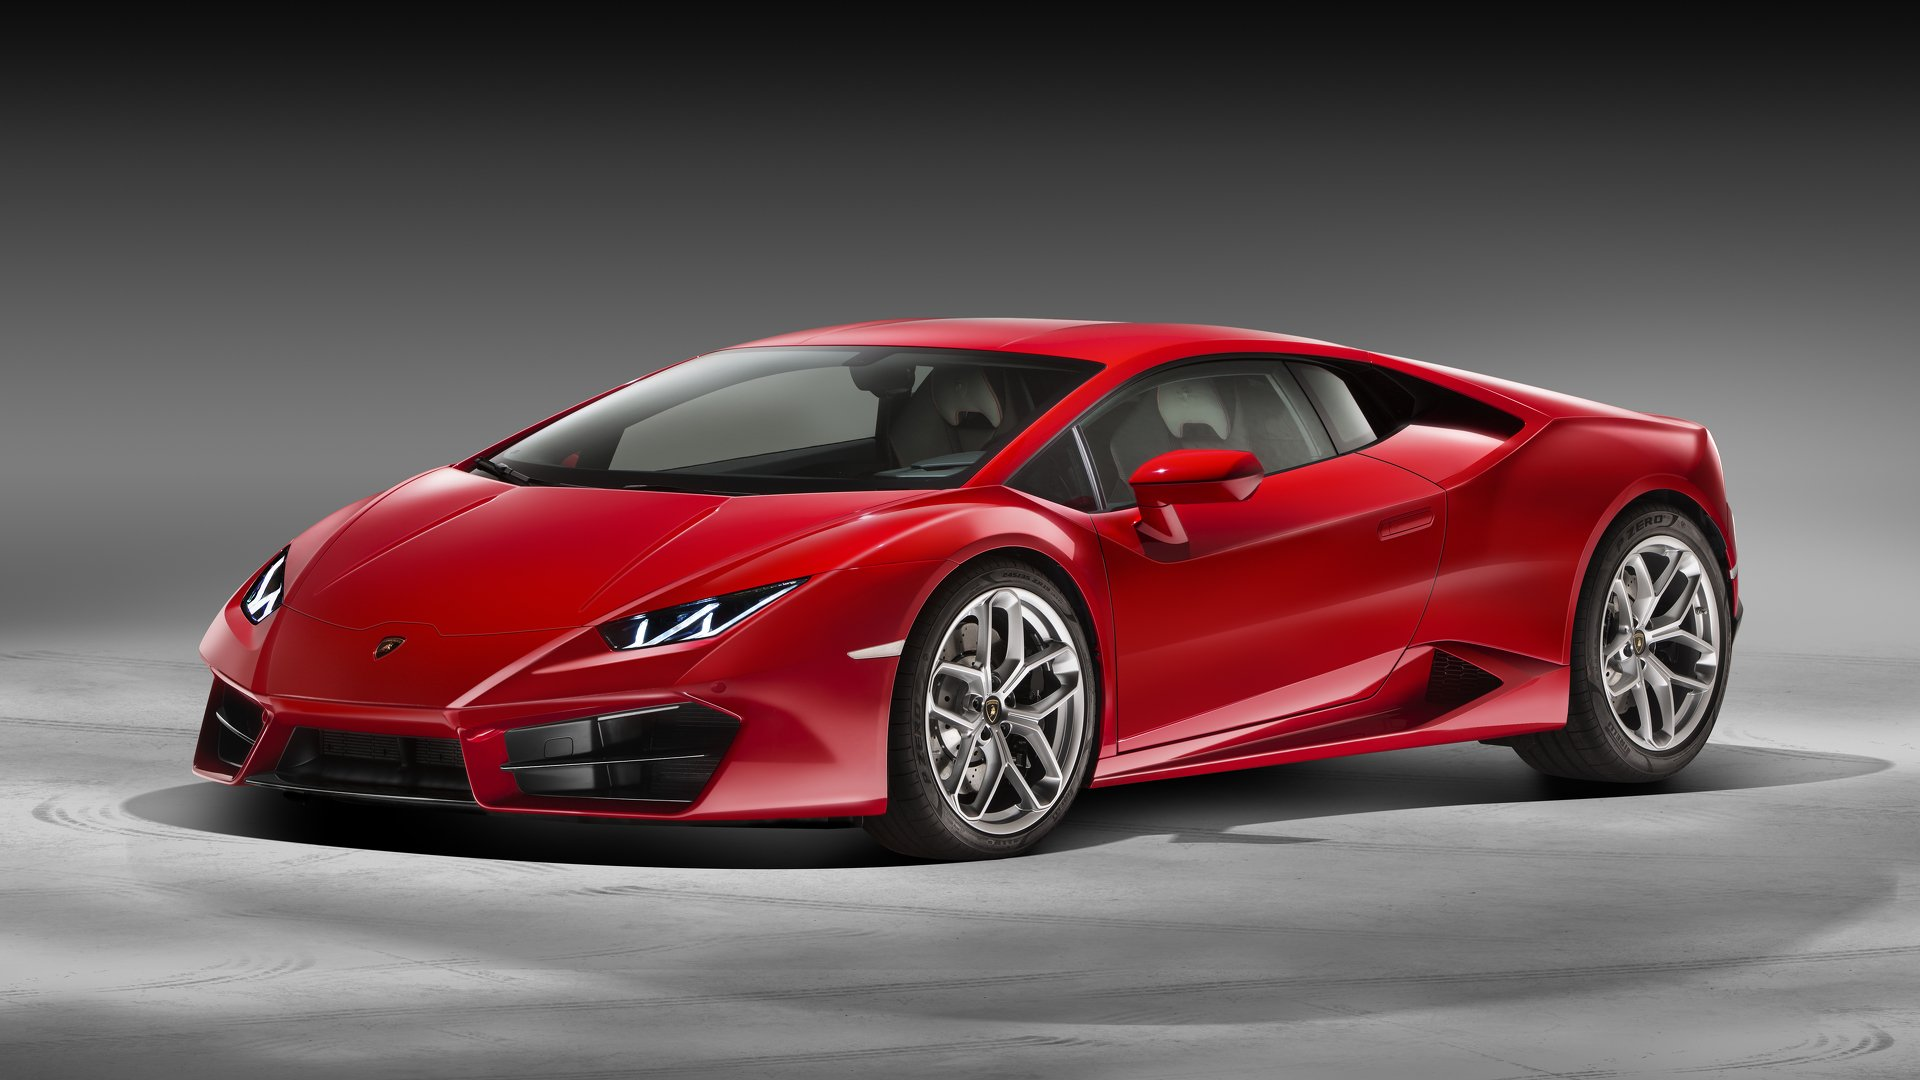 Lamborghini Huracan one of the most Instagram able or Insta-worthy cars among on social media